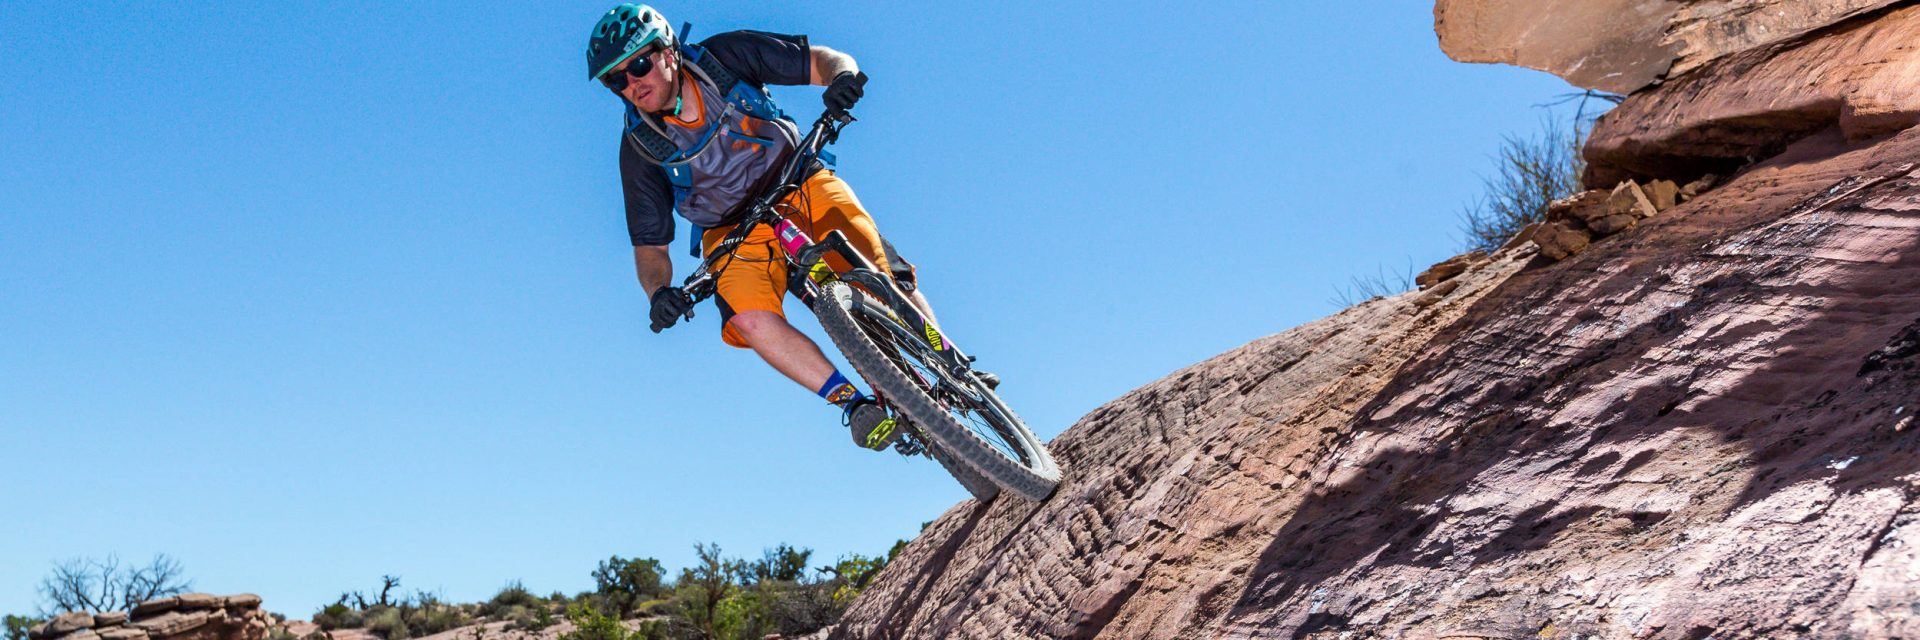 Slickrock Trail has plenty of opportunities for the more adventurous riders to stretch the envelope.